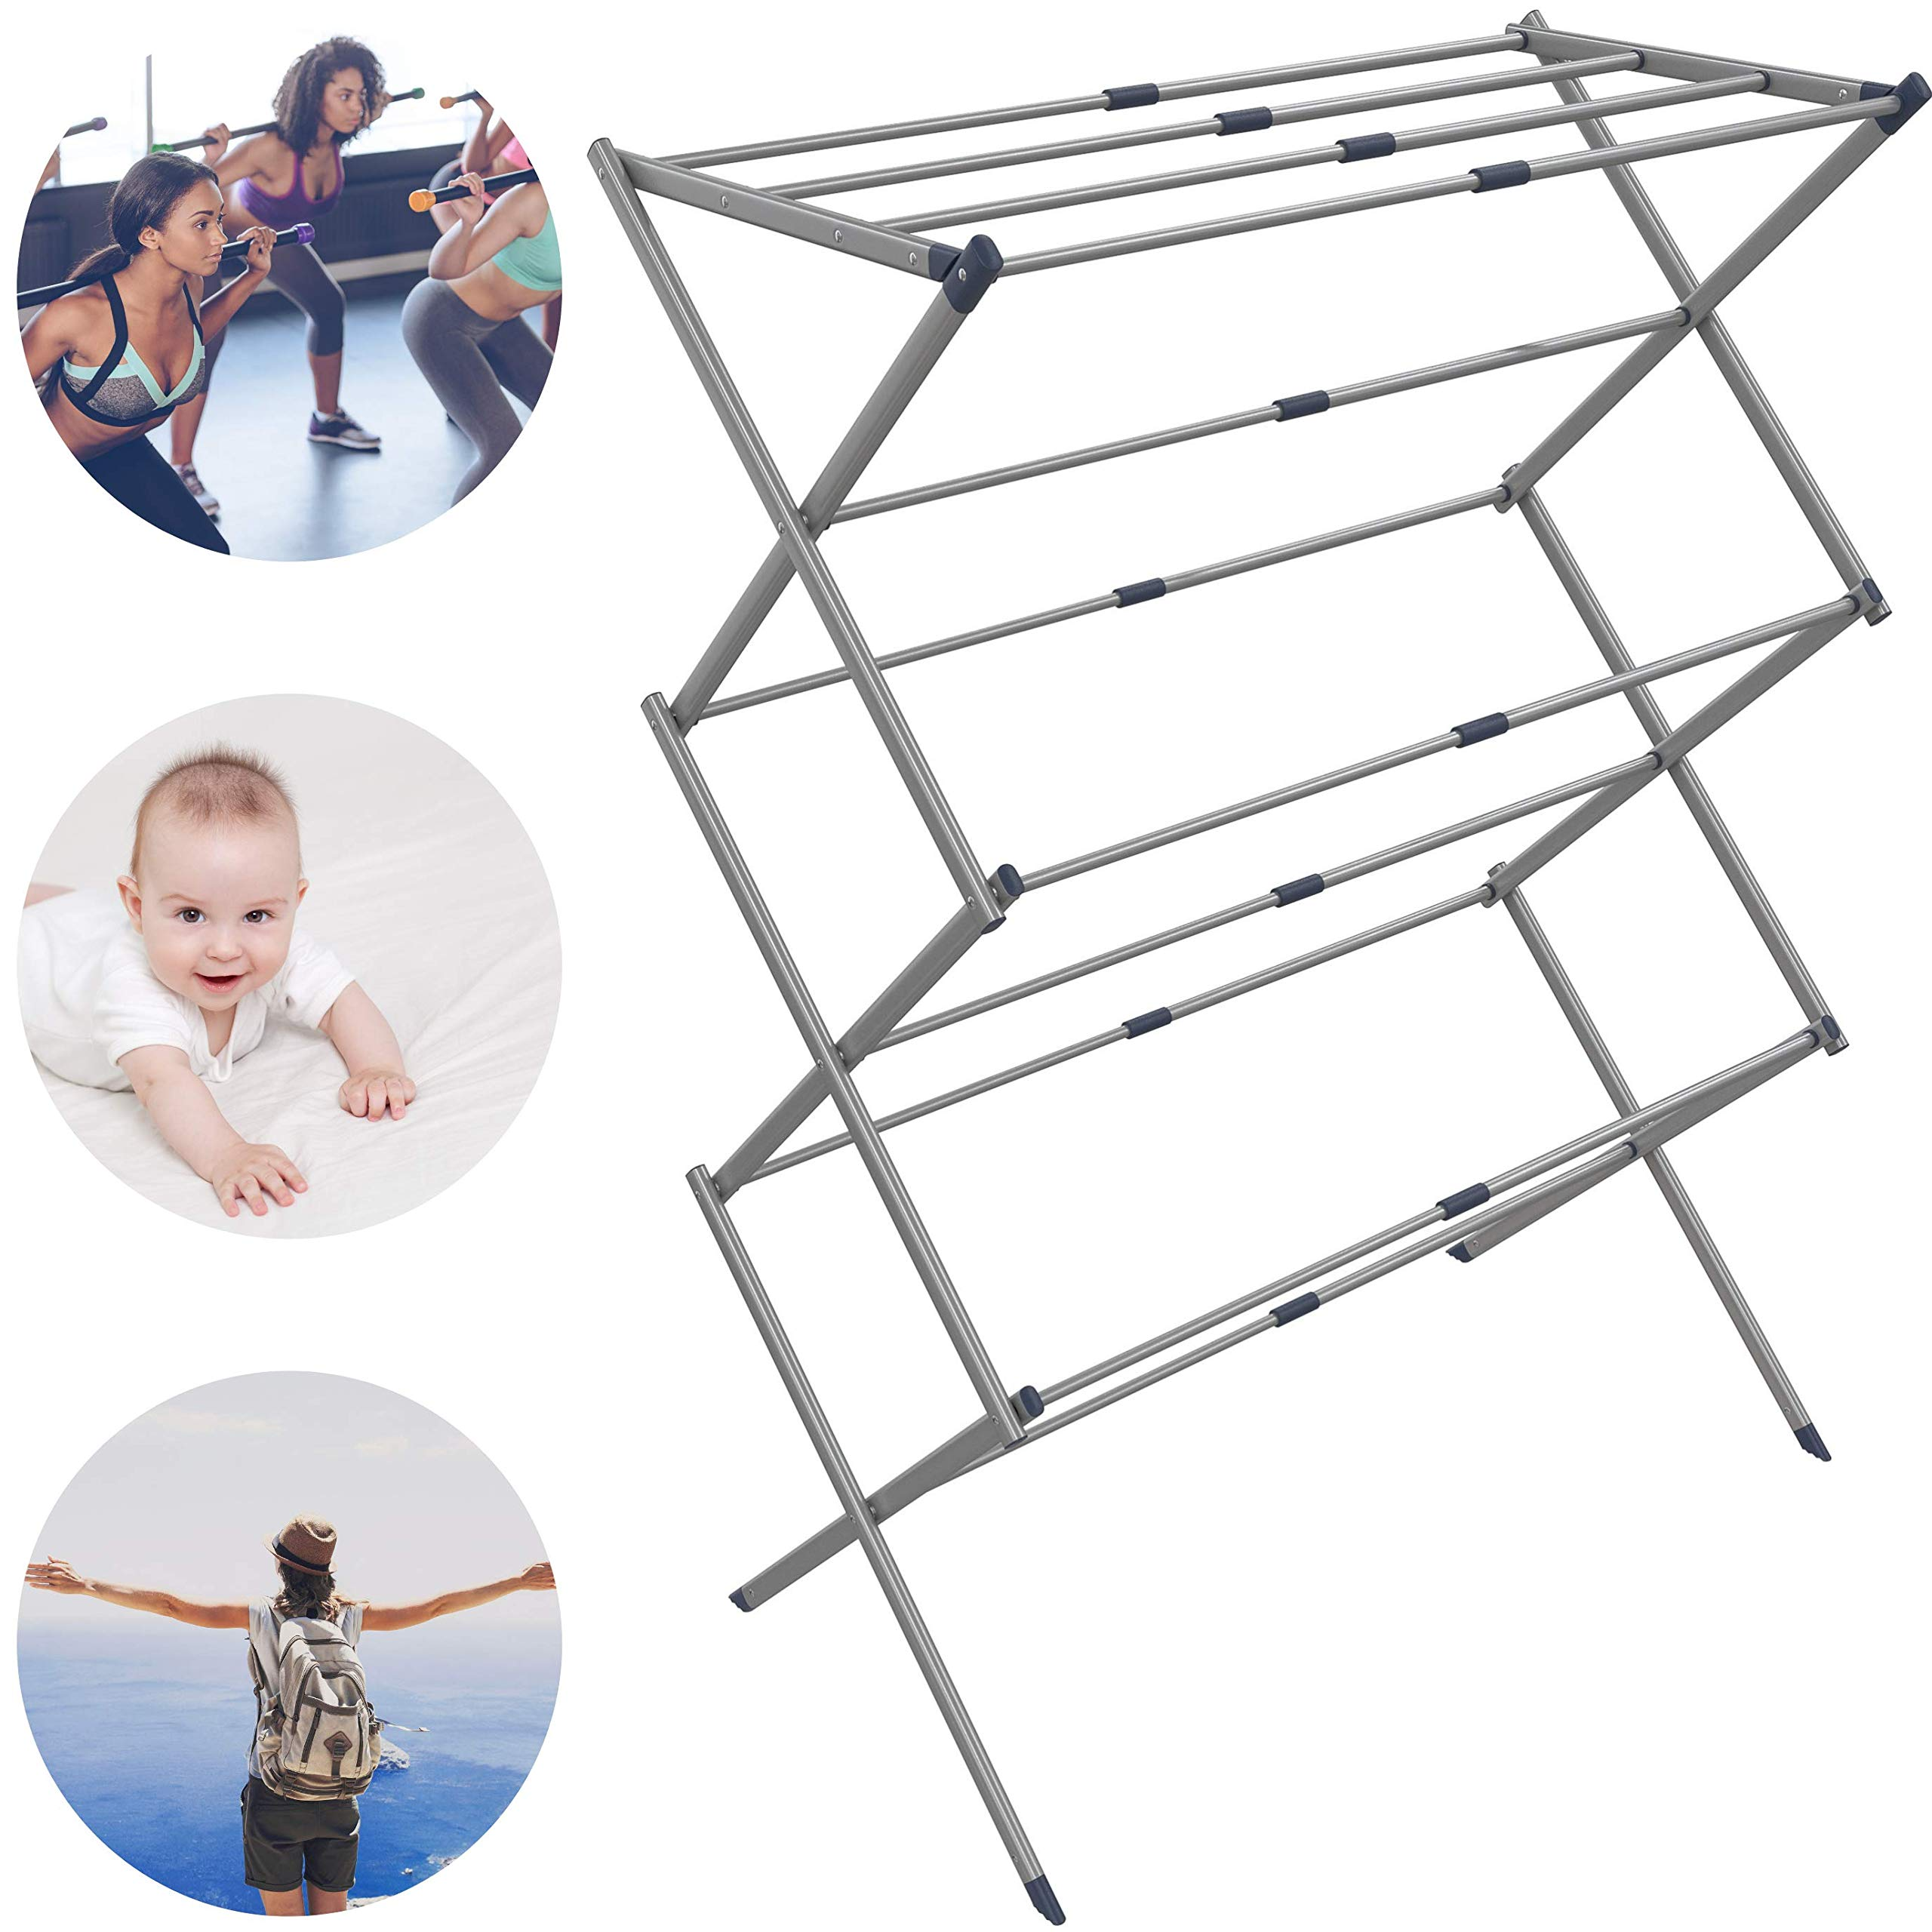 Clothes Drying Rack - Drying Rack - Laundry Drying Rack - Laundry Hanger - Baby Clothes Drying Rack - Folding Drying Rack - Portable Drying Rack - Accordion Drying Rack - Air Expandable Drying Rack by Penatline